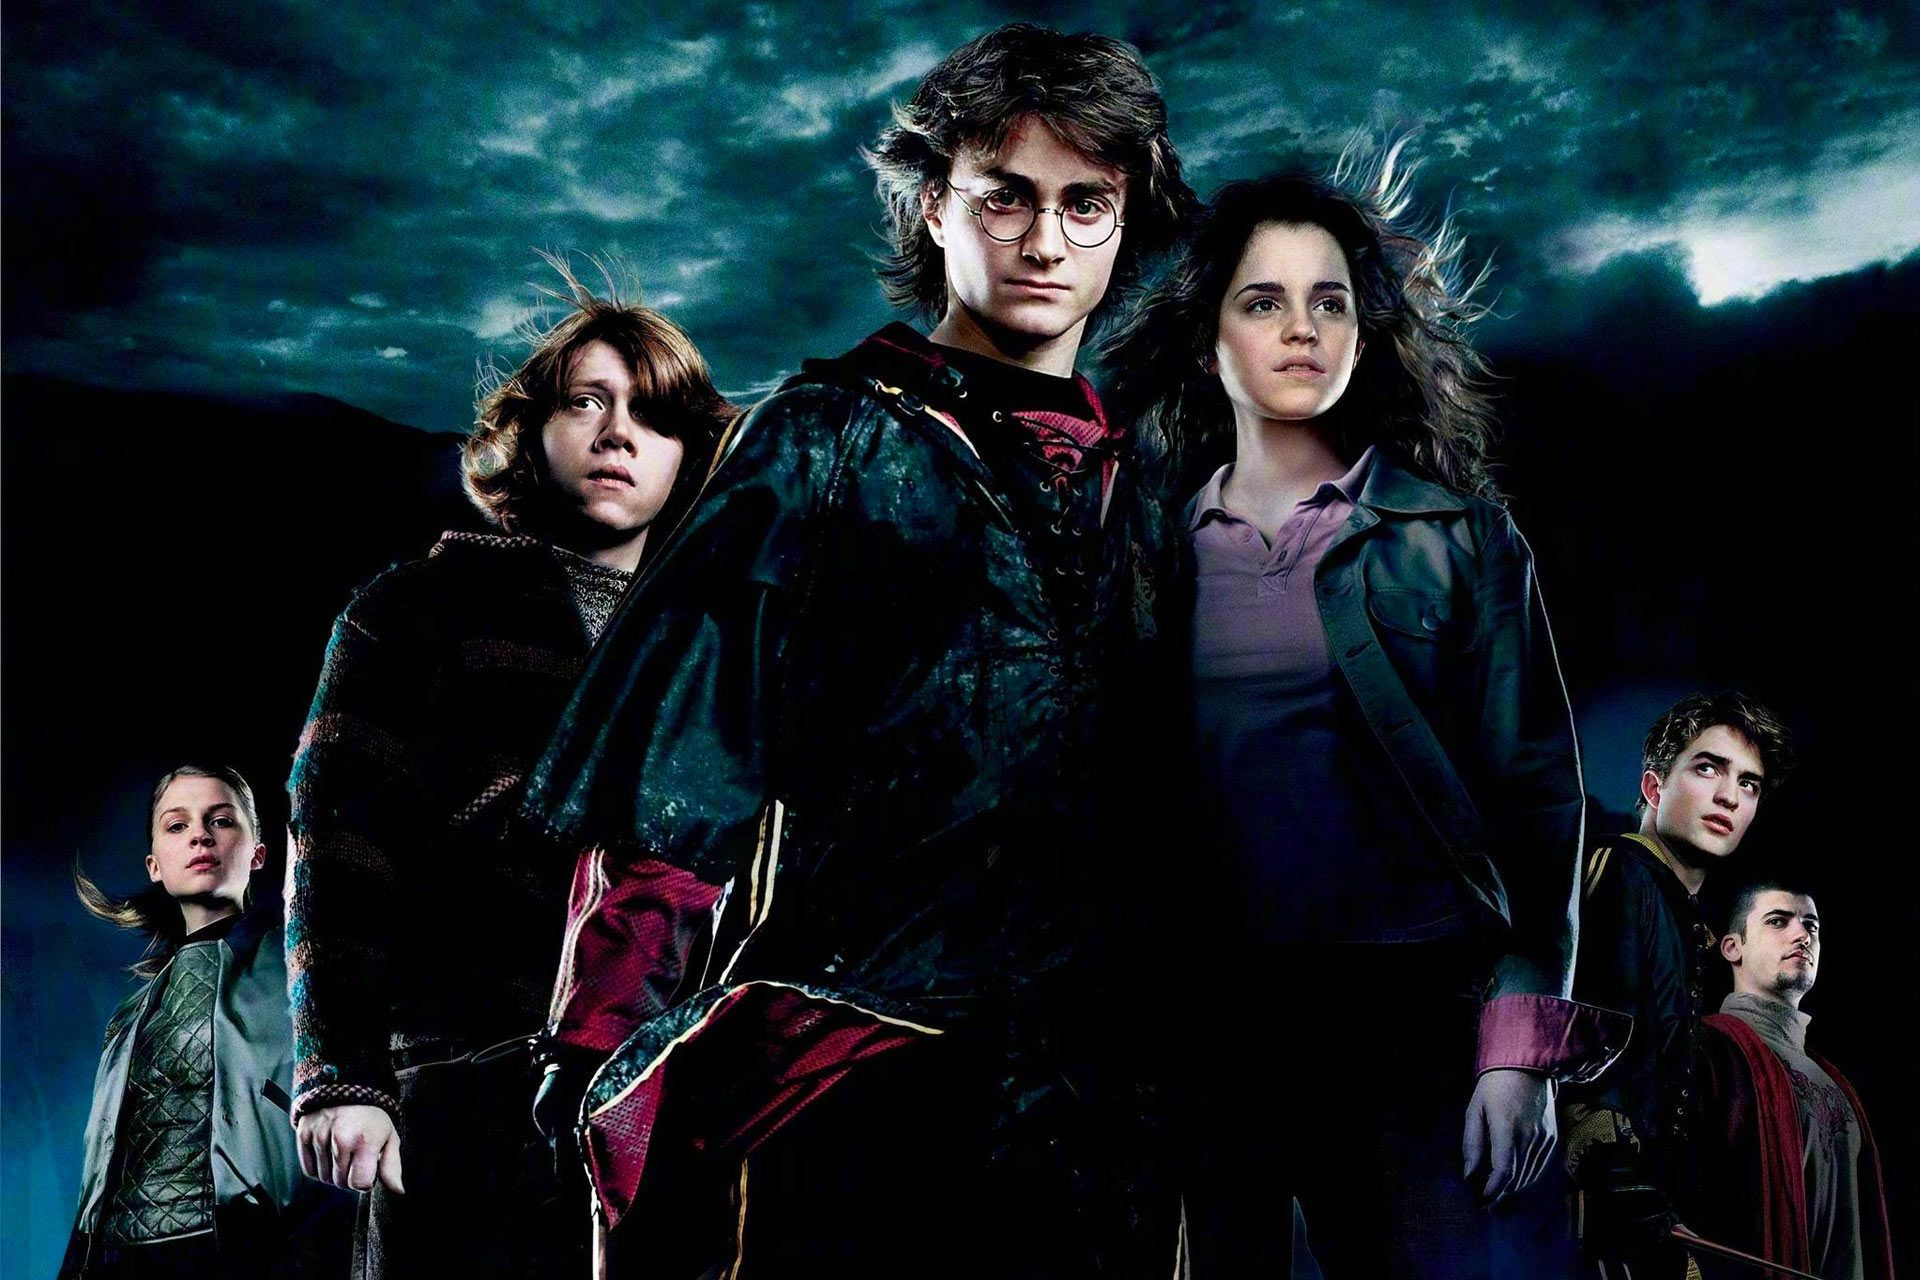 8 Movies Like Harry Potter To Watch That Are Full Of Magic Fantasy I Am Co In 2020 Harry Potter Collection Harry Potter Films Deathly Hallows Part 2